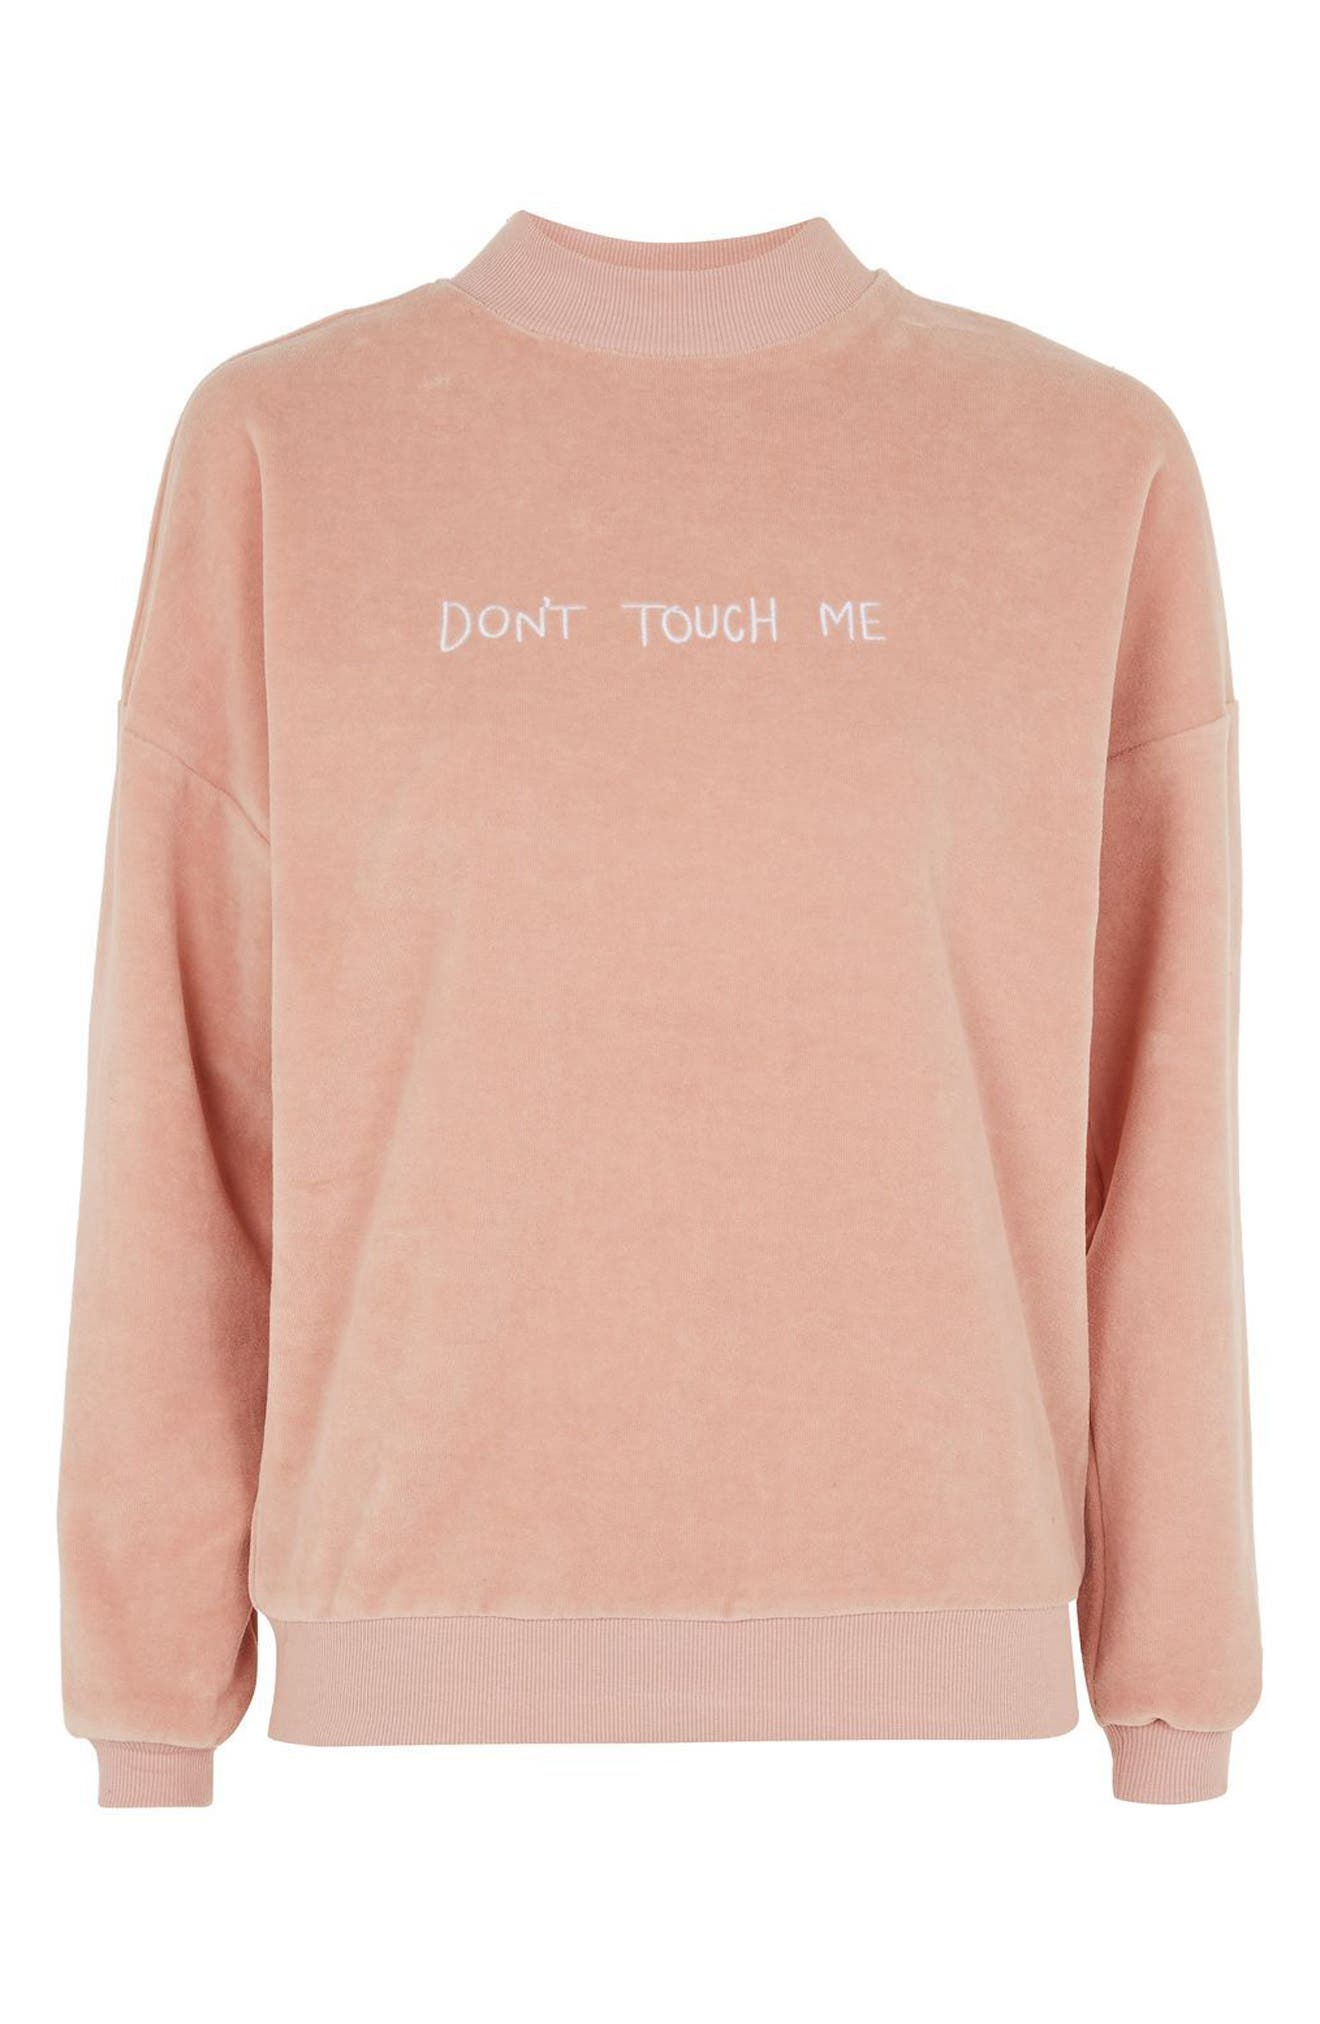 Alternate Image 4  - Topshop by Tee & Cake Don't Touch Me Velvet Sweatshirt